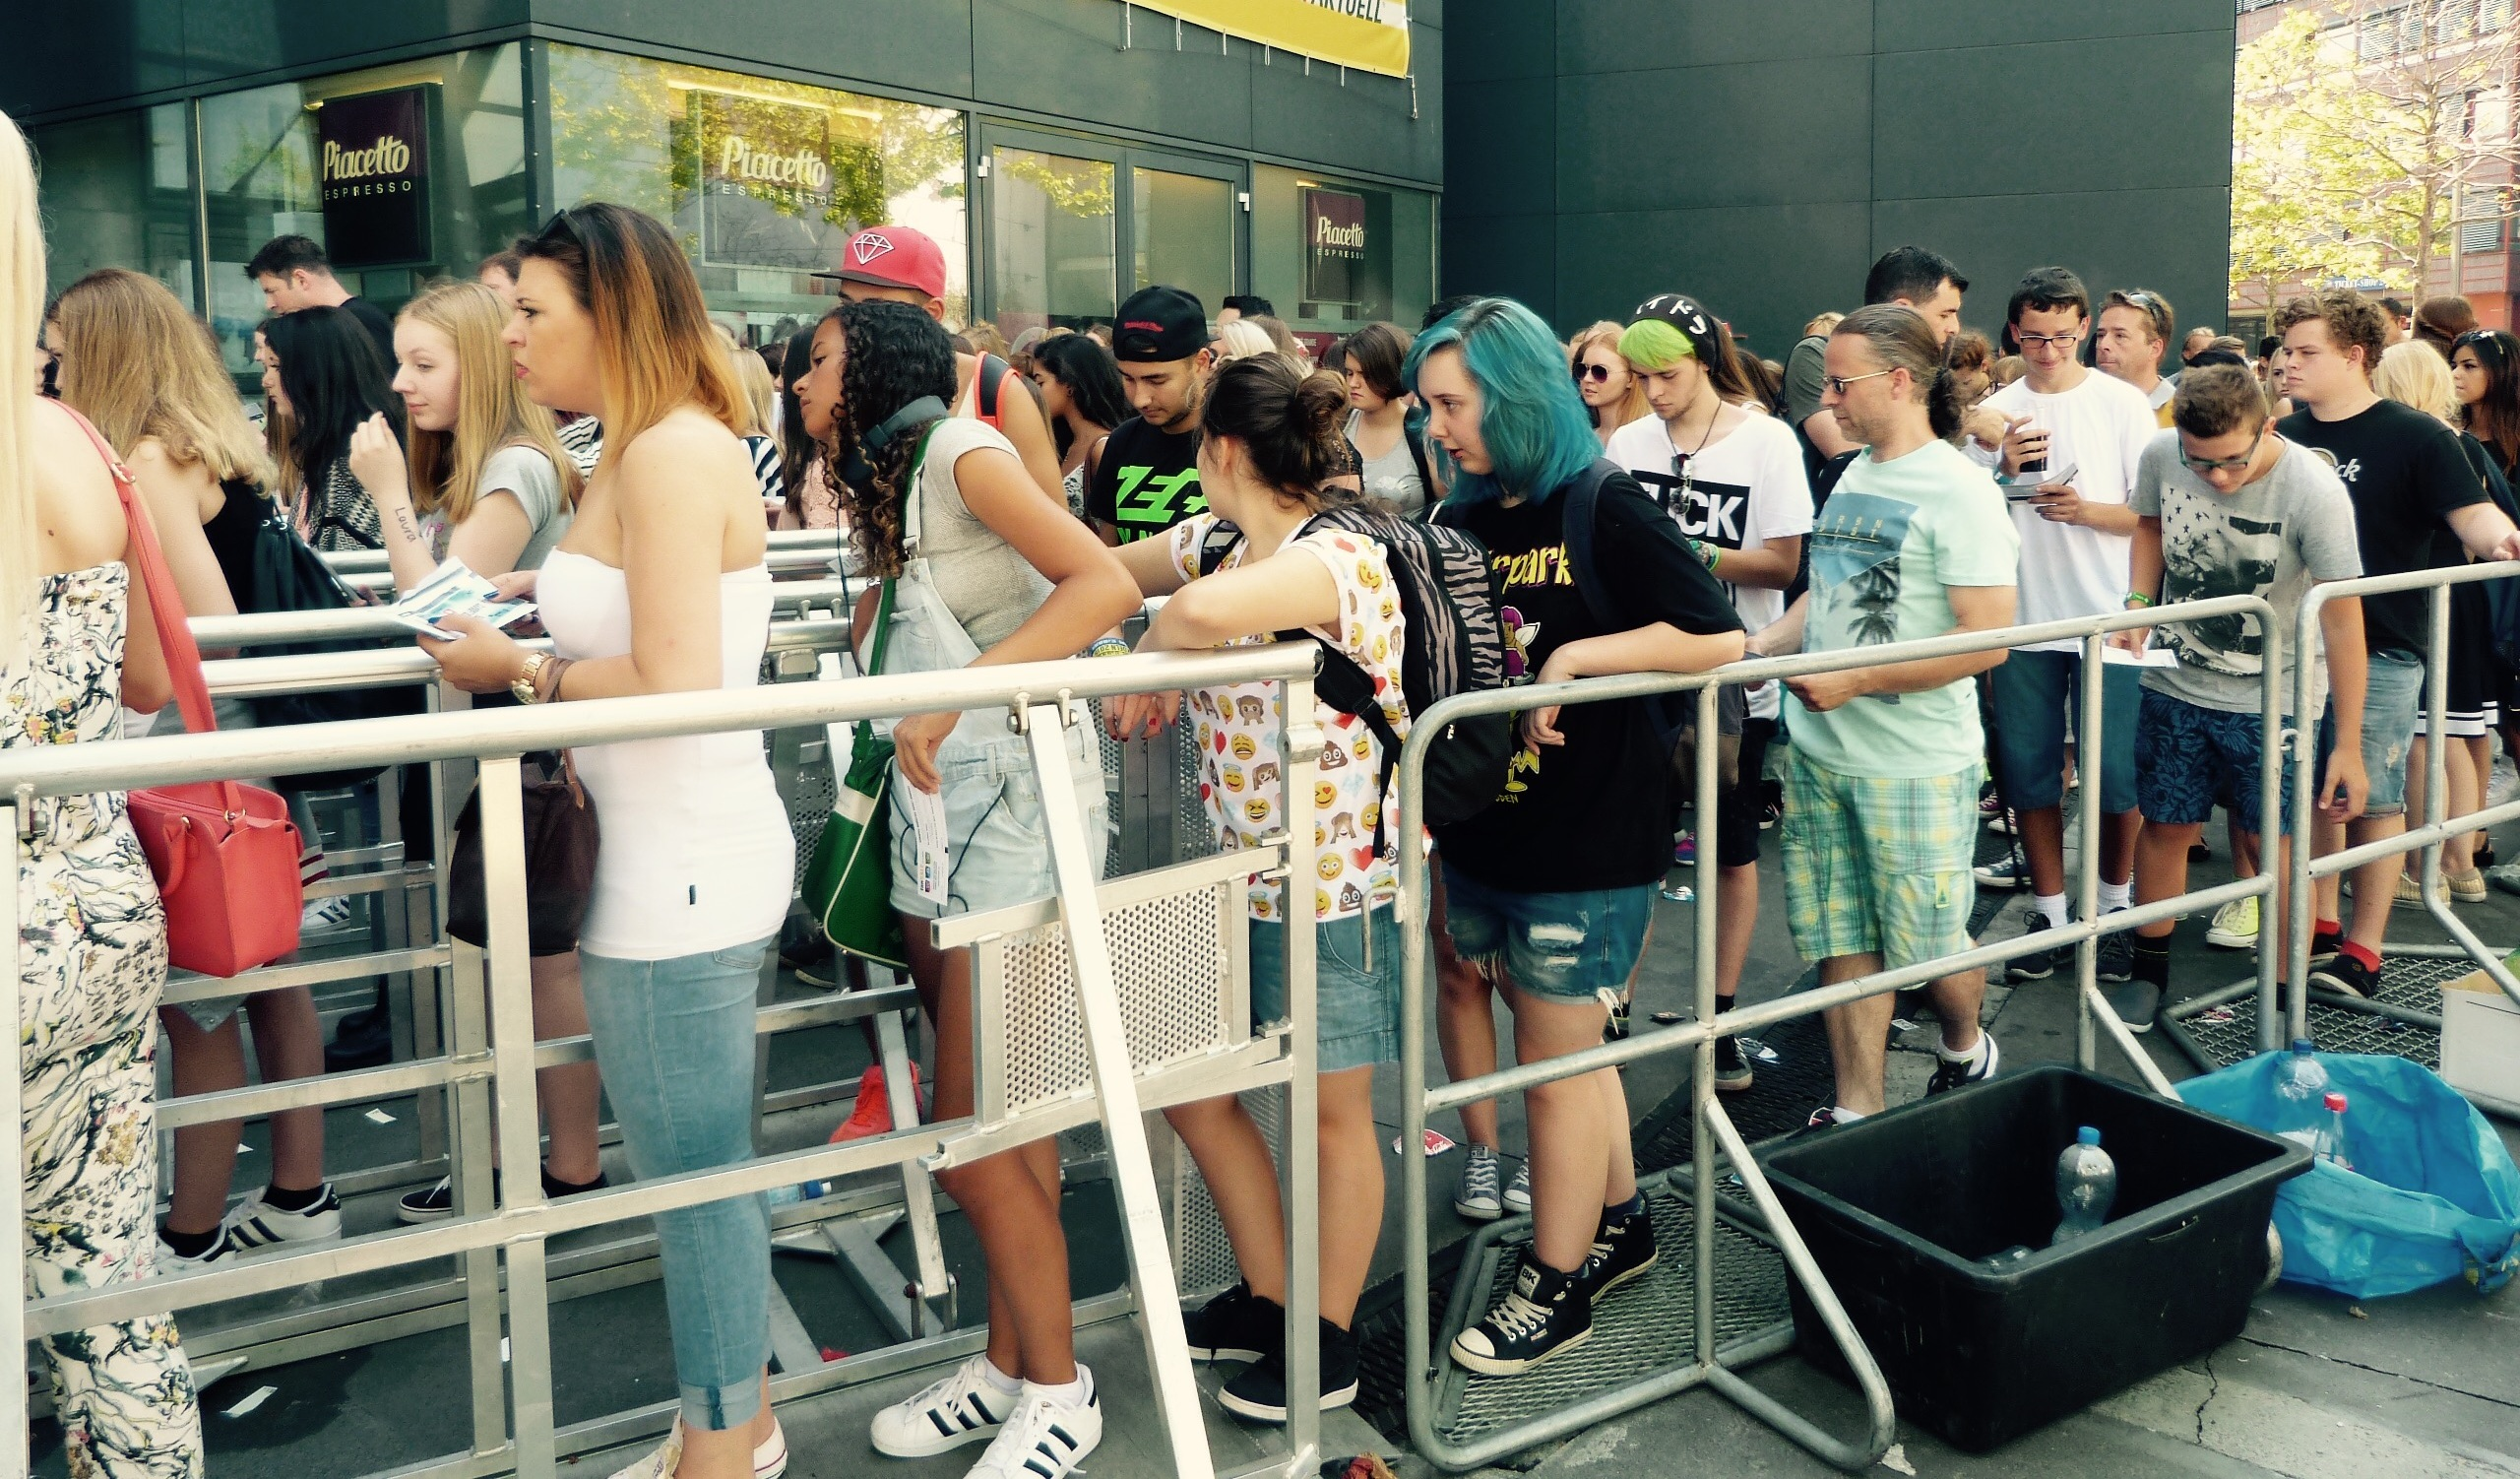 Fans lining up